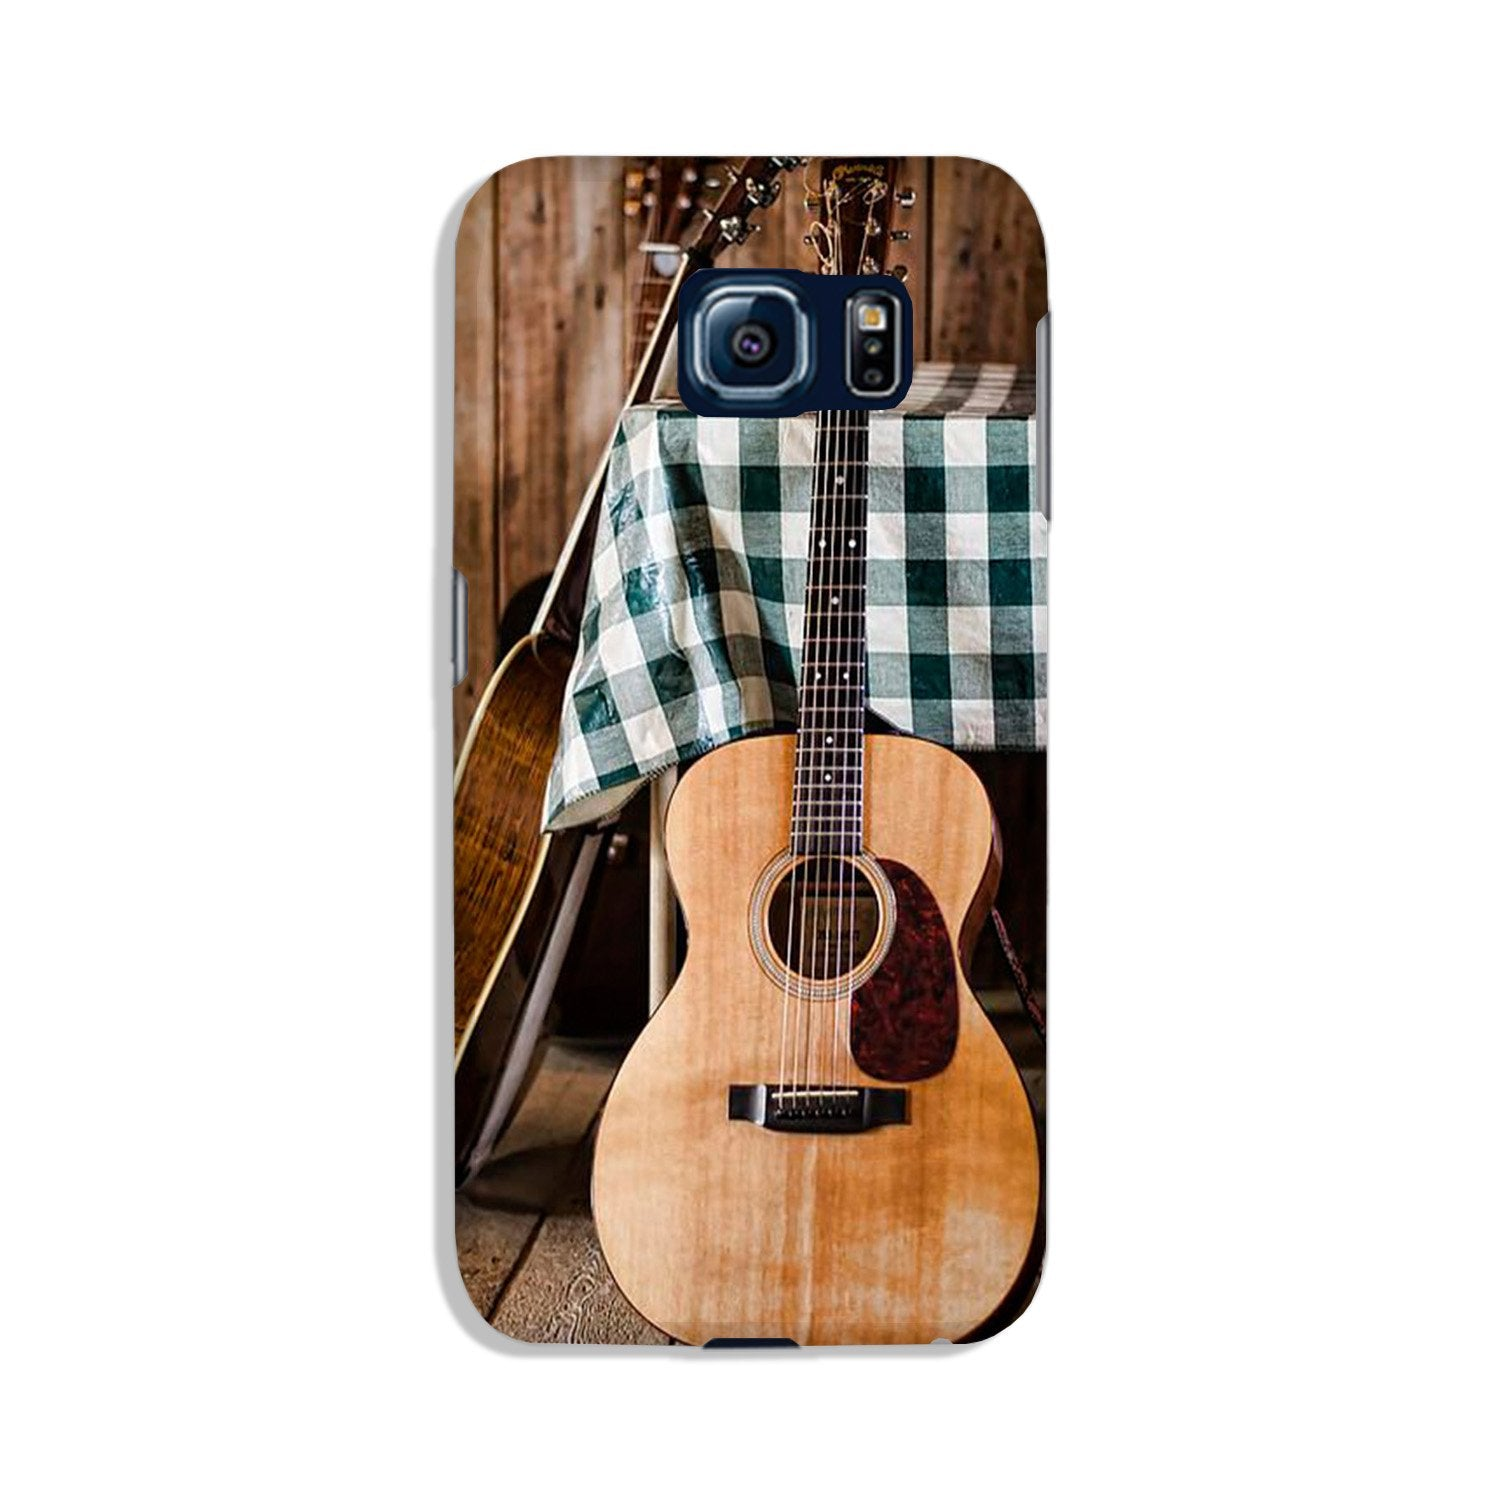 Guitar2 Case for Galaxy S6